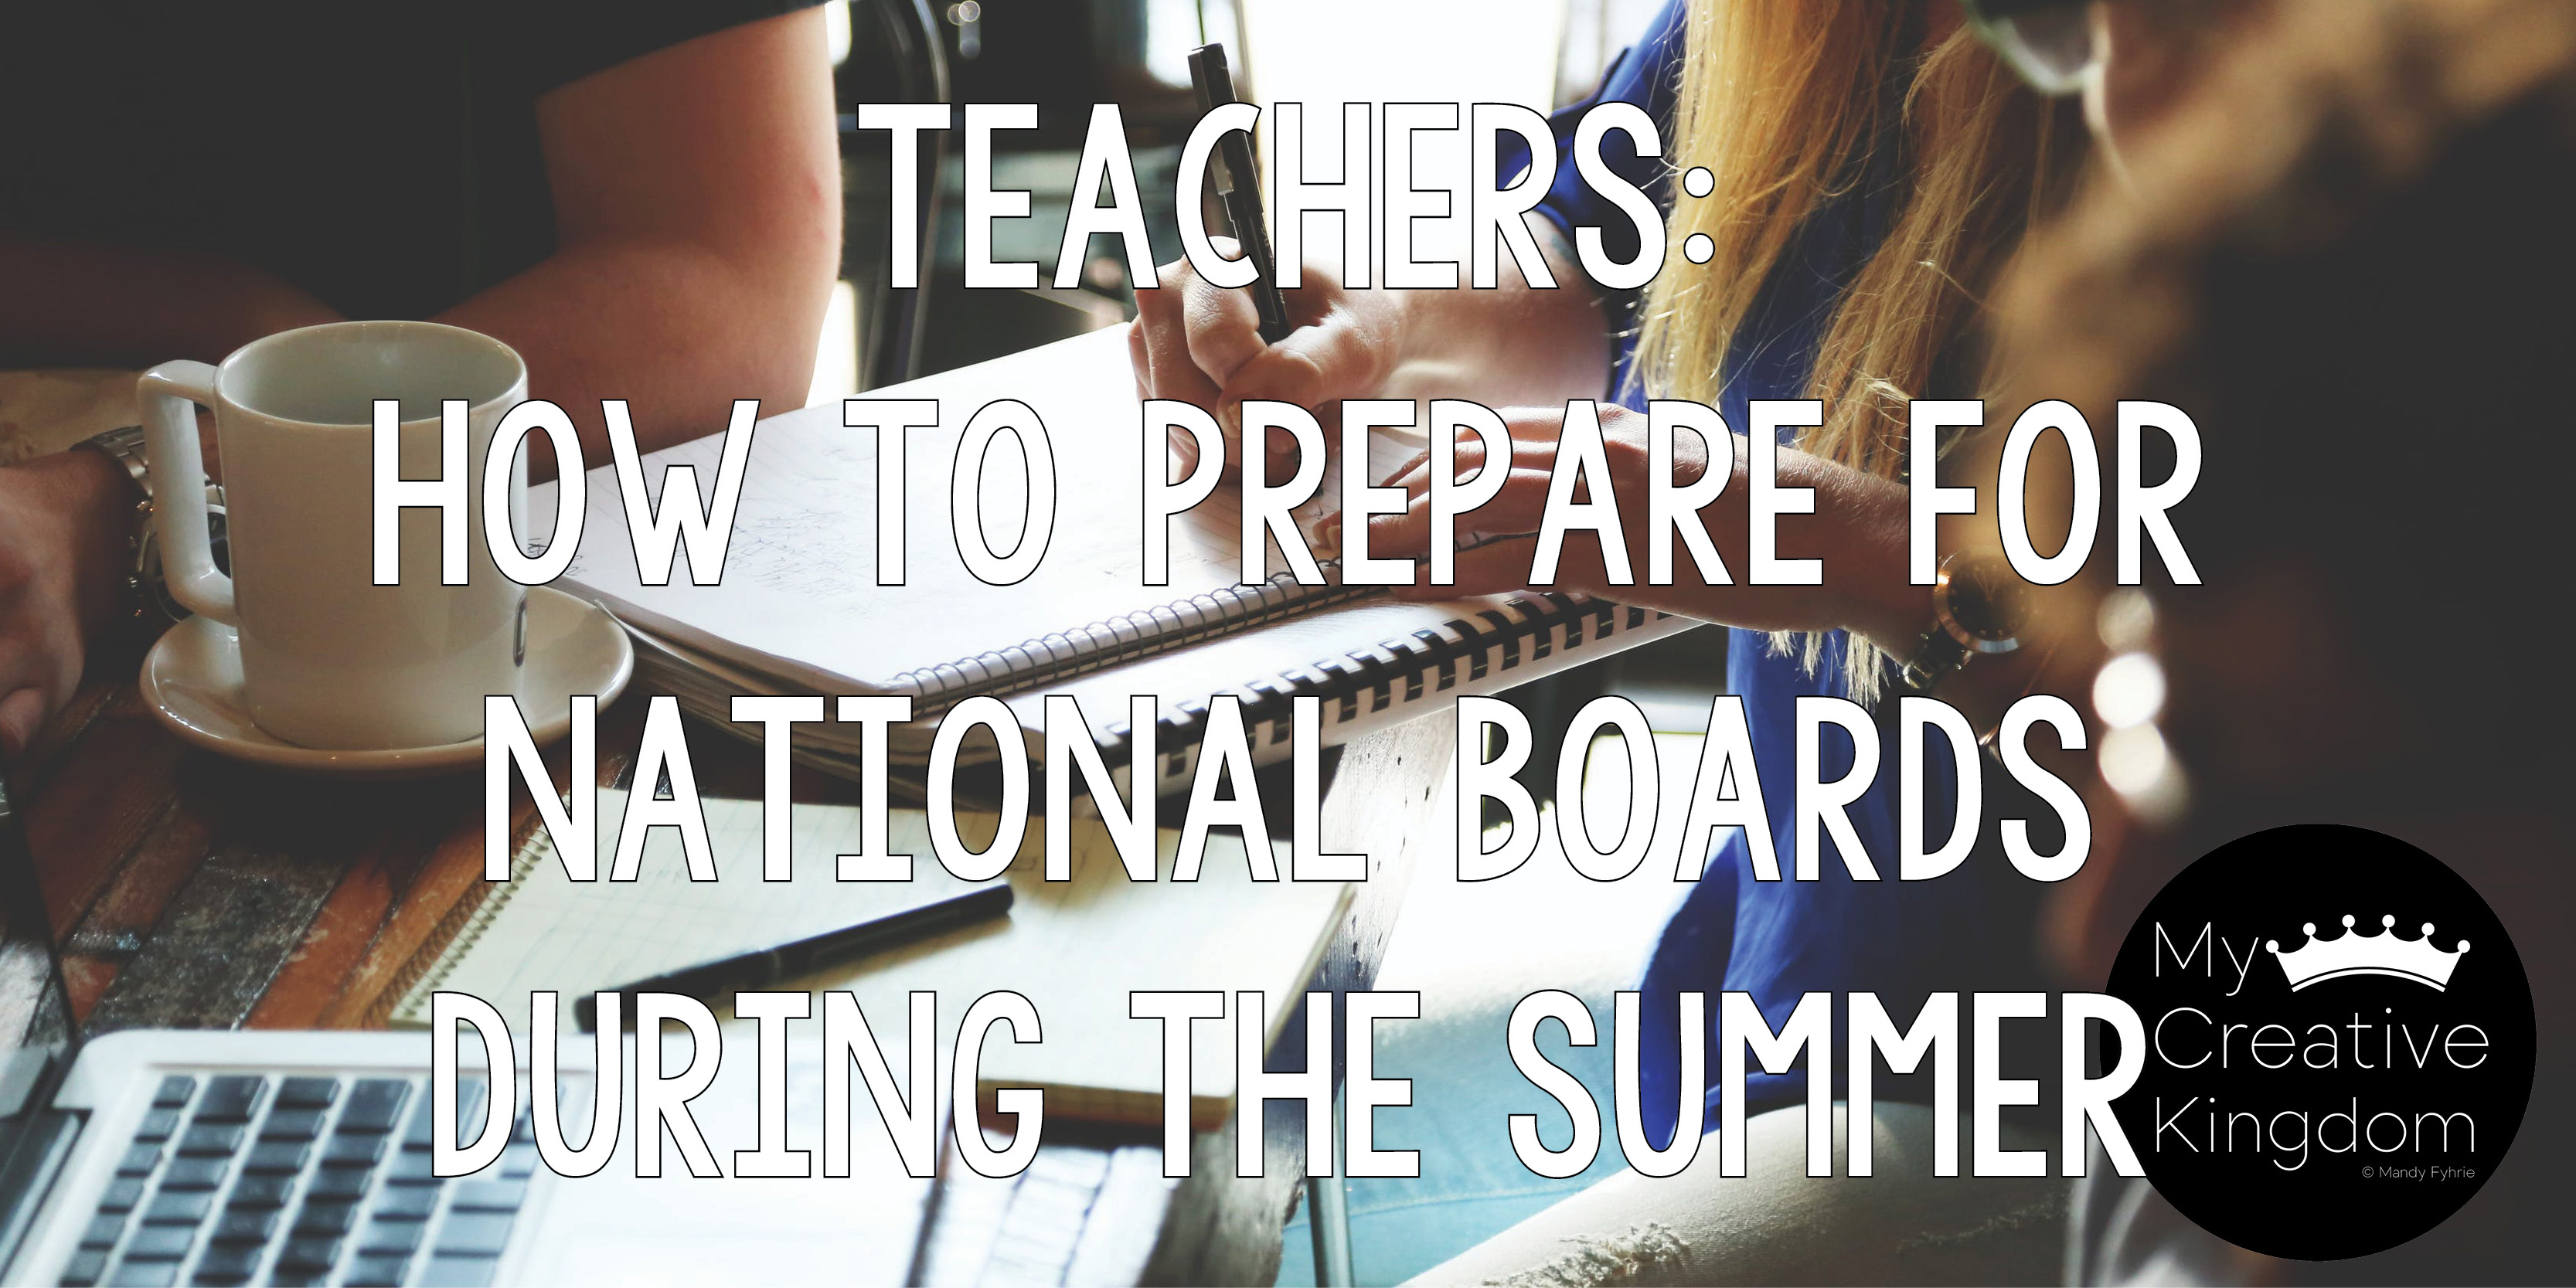 6 Simple tips to prepare for National Boards during the summer months prior to school starting AND book study resources